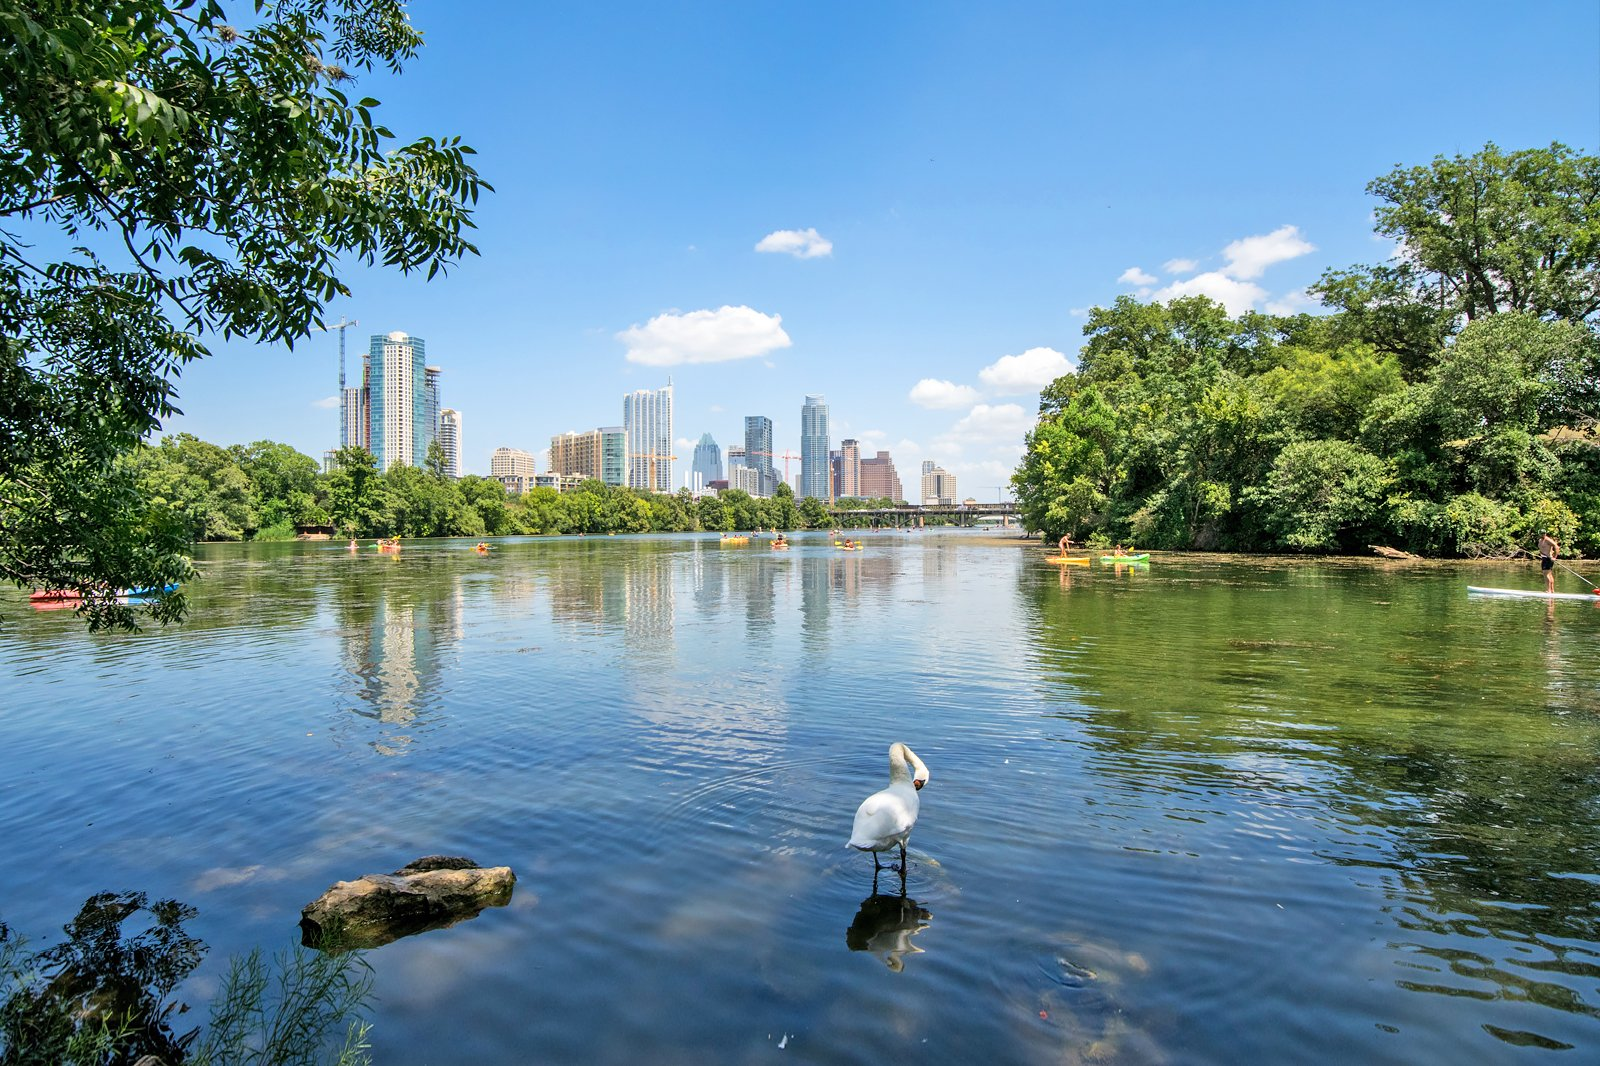 10 Best Things to Do for Couples in Austin - Austin's Most